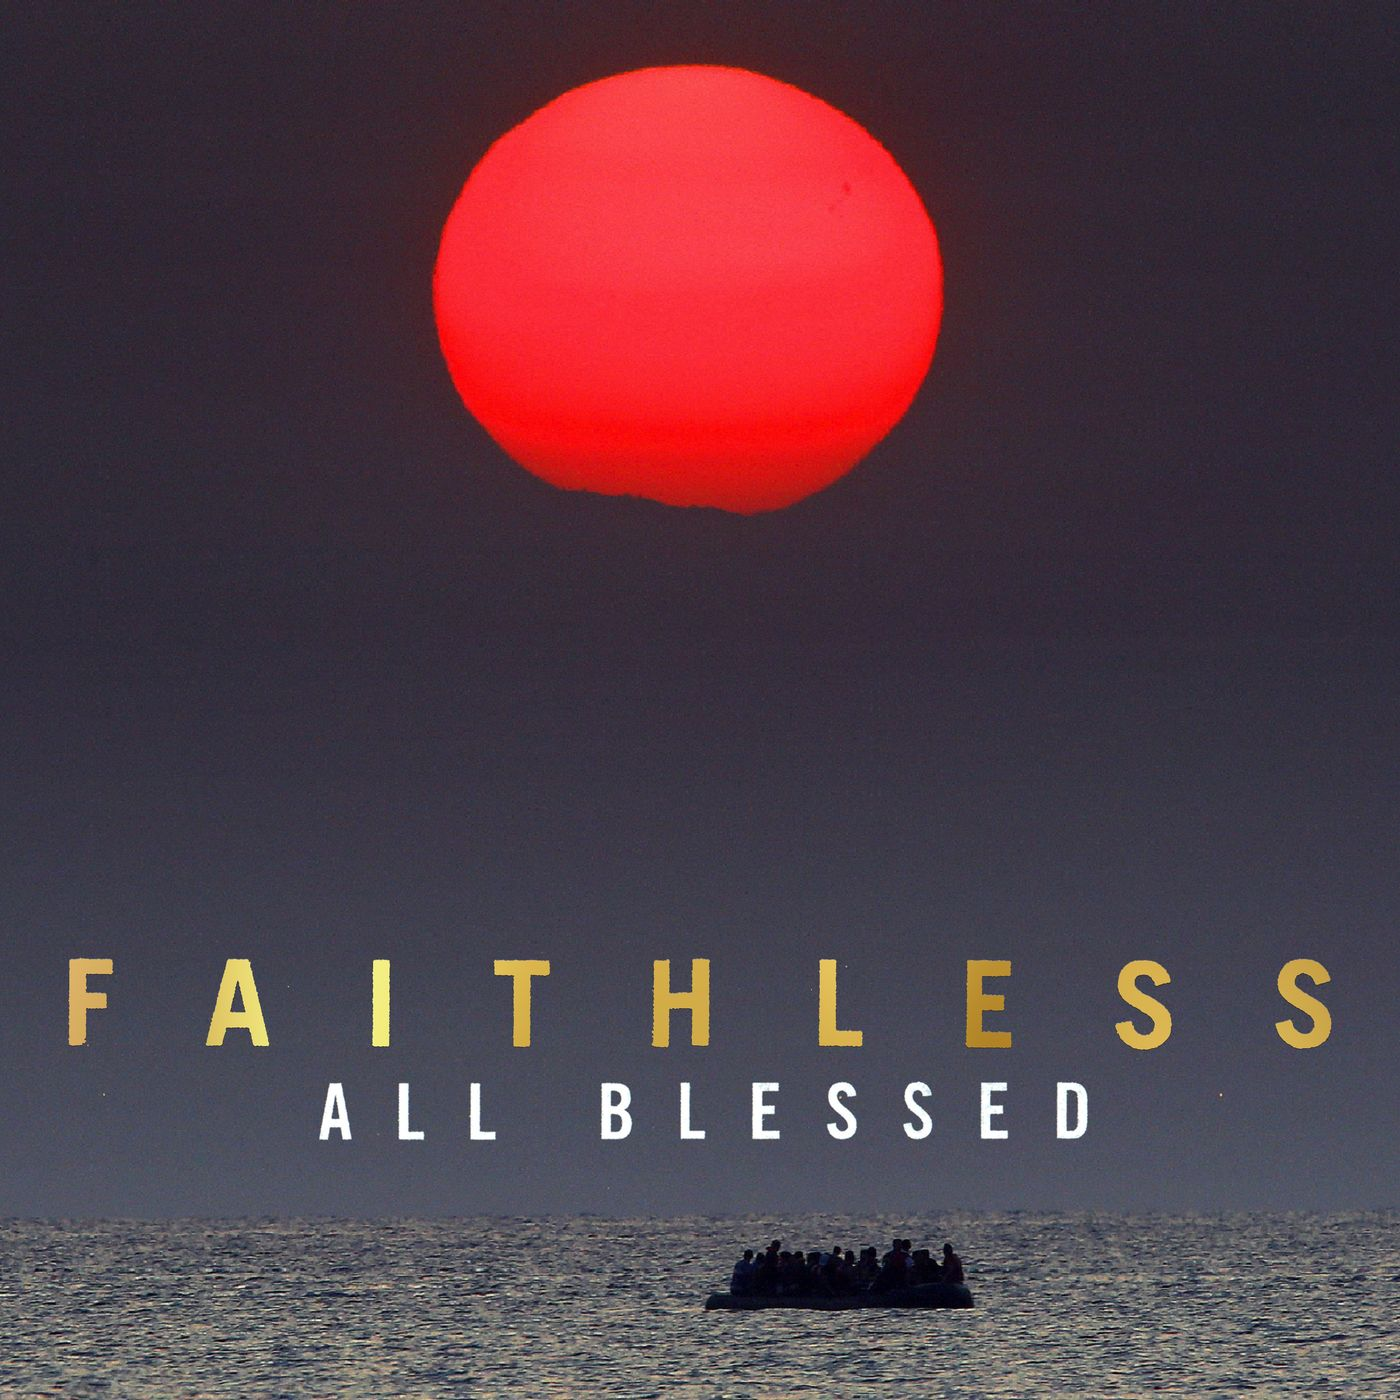 Art for All Blessed by Faithless